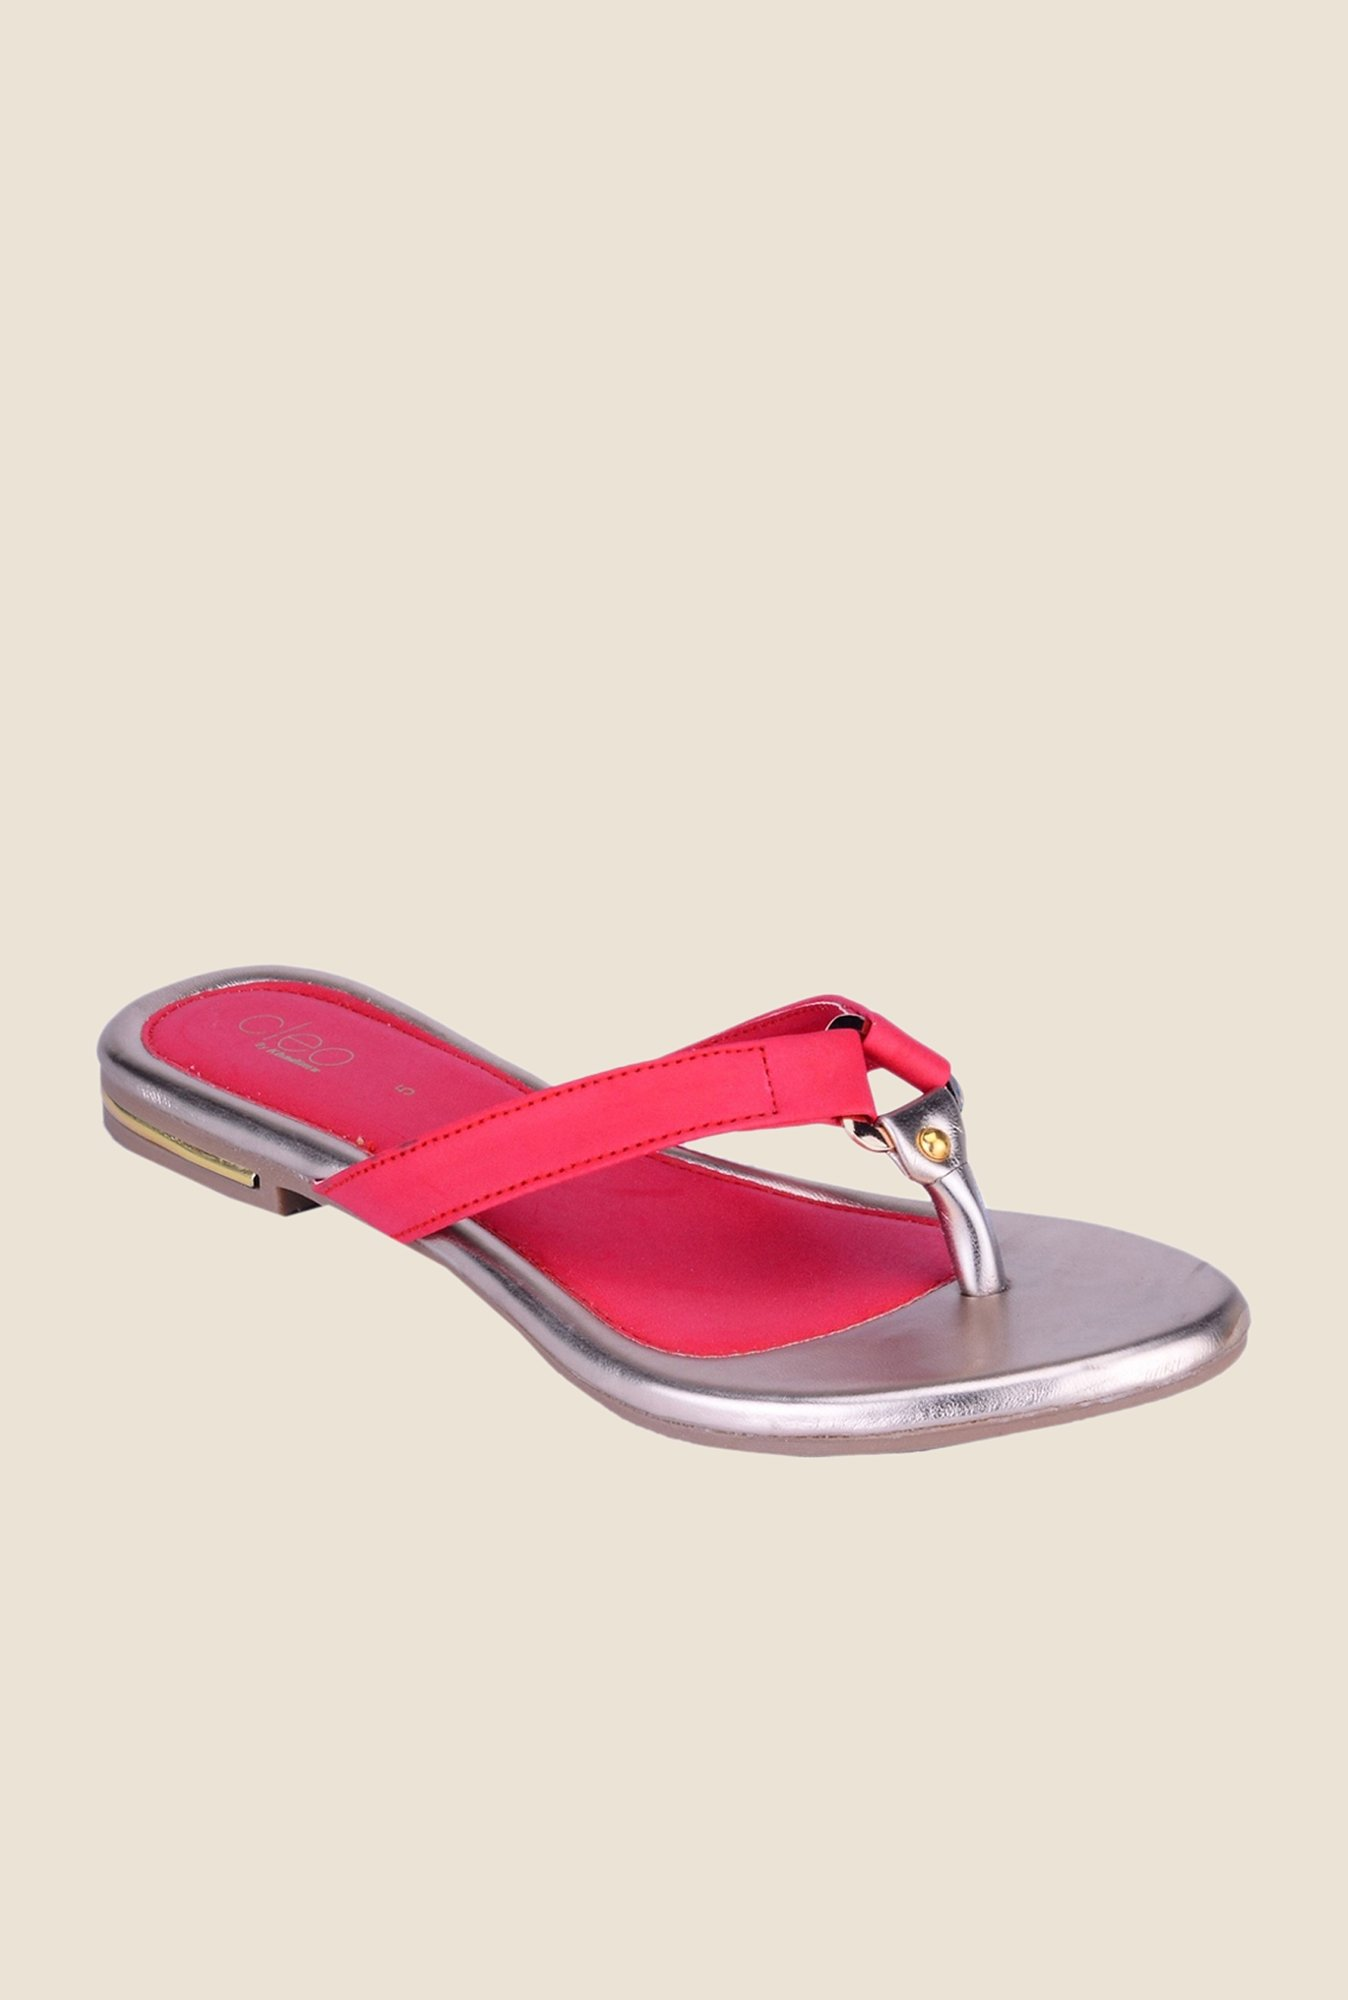 Khadim's Cleo Red & Silver Thong Sandals